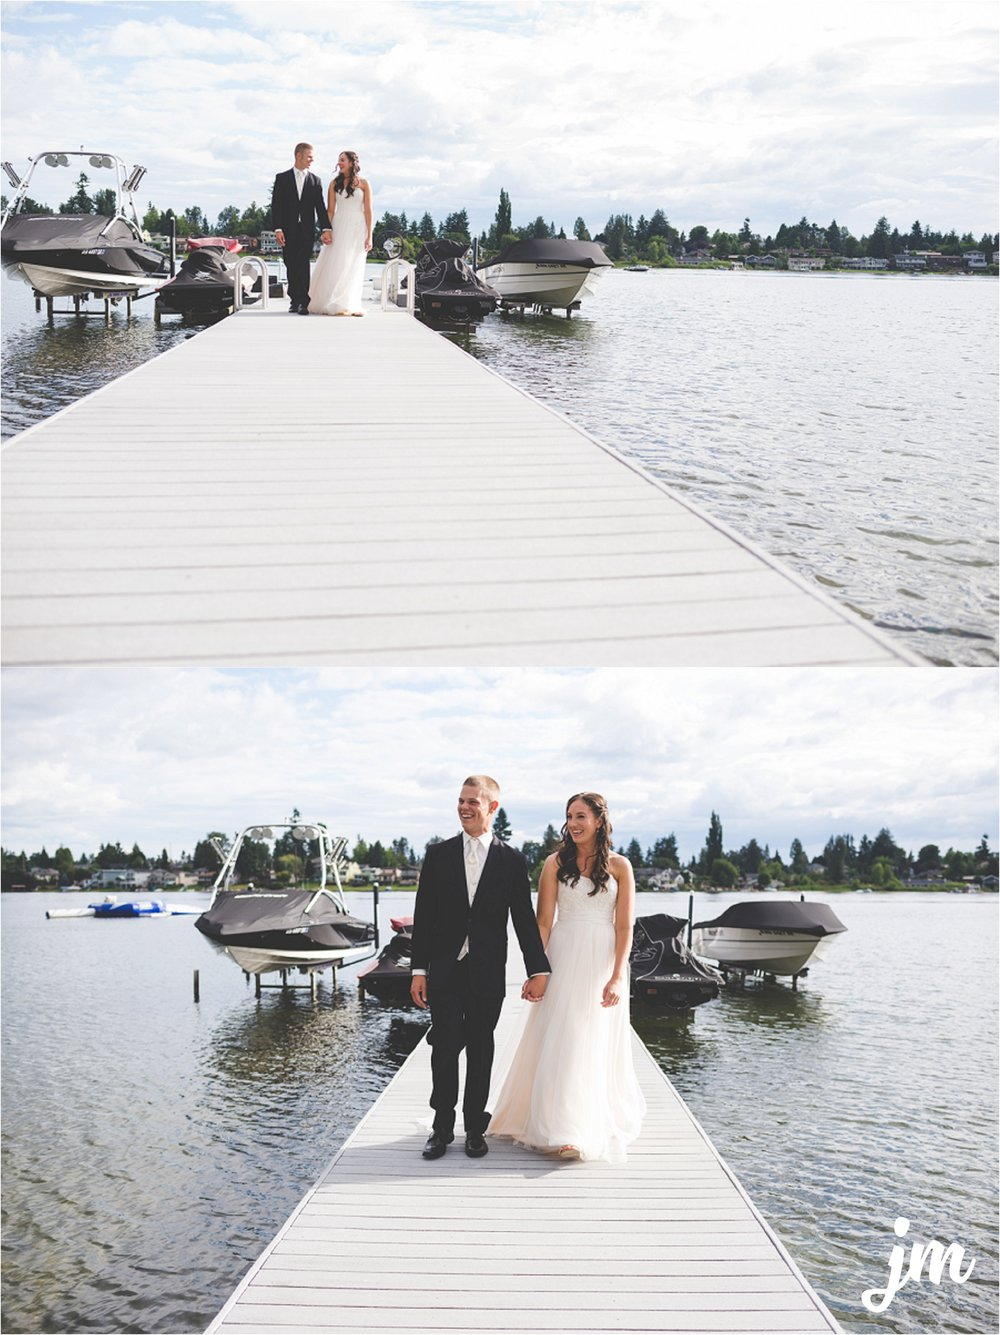 jannicka-mayte-intimate-backyard-lake-wedding-kent-wa-pacific-northwest-wedding-photographer_0020.jpg